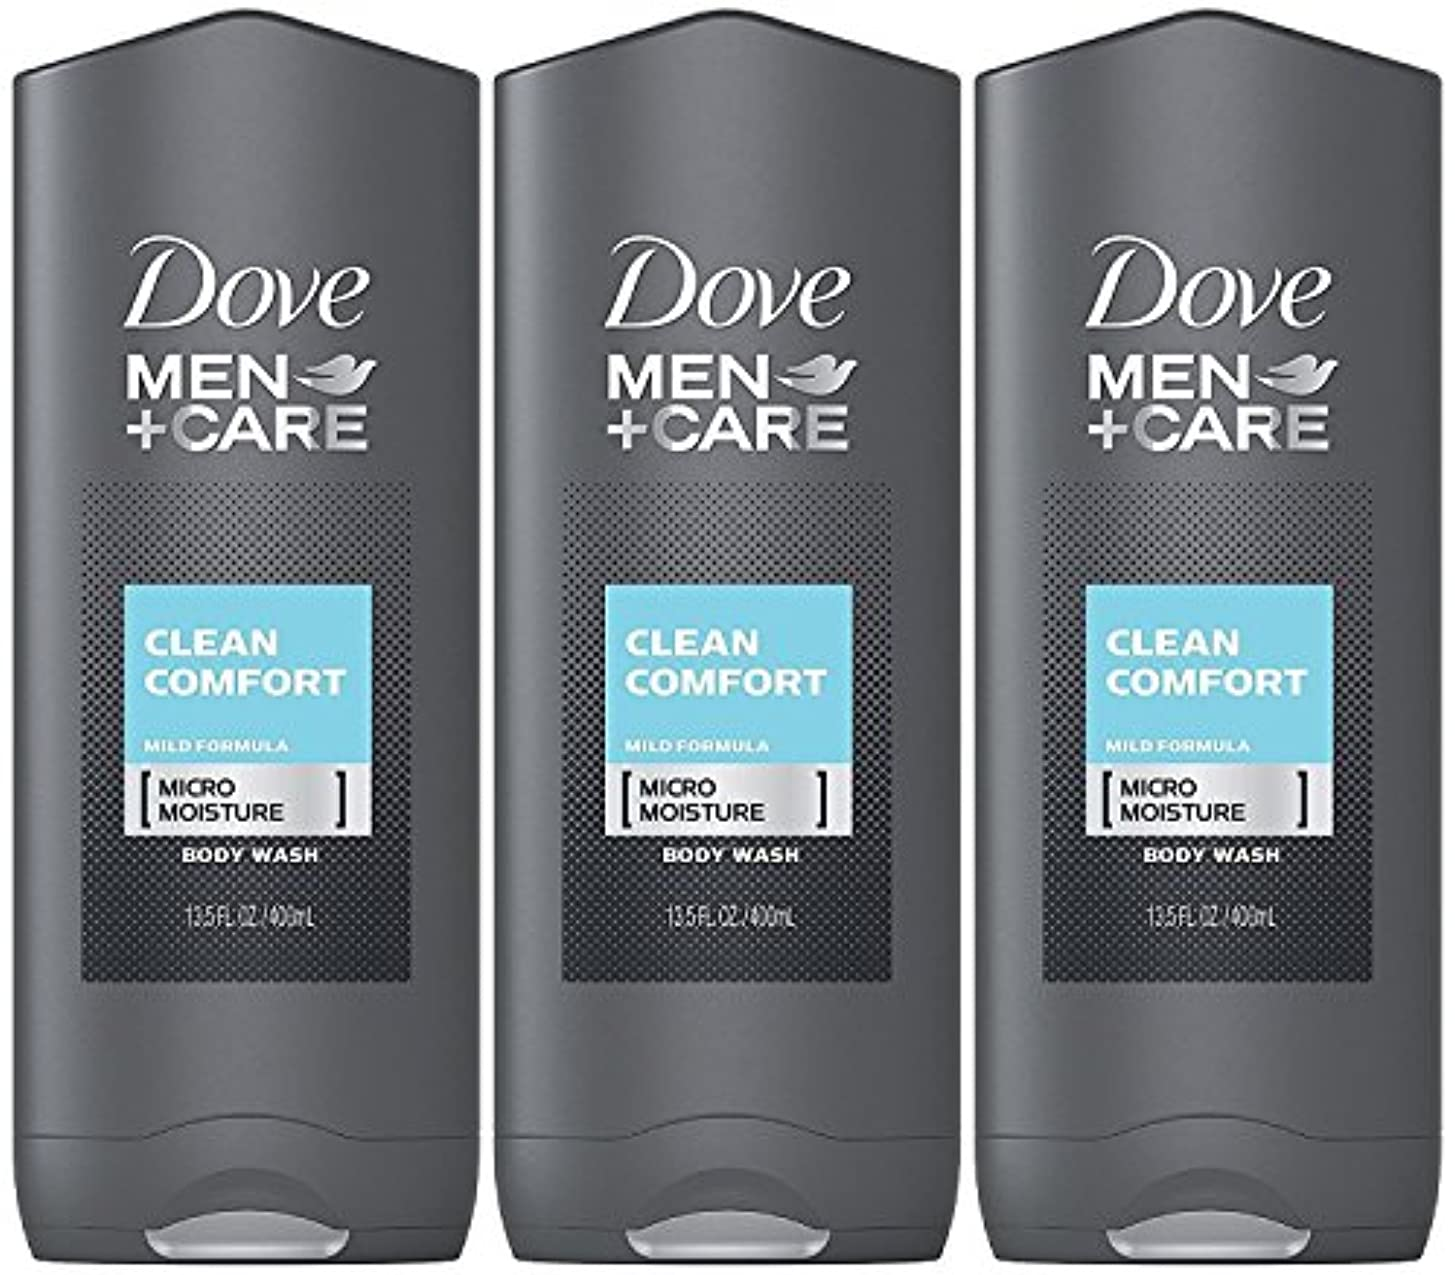 楽しませるお世話になった大佐Dove Men Plus Care Body and Face Wash Clean Comfort , 13.5 Oz by Dove